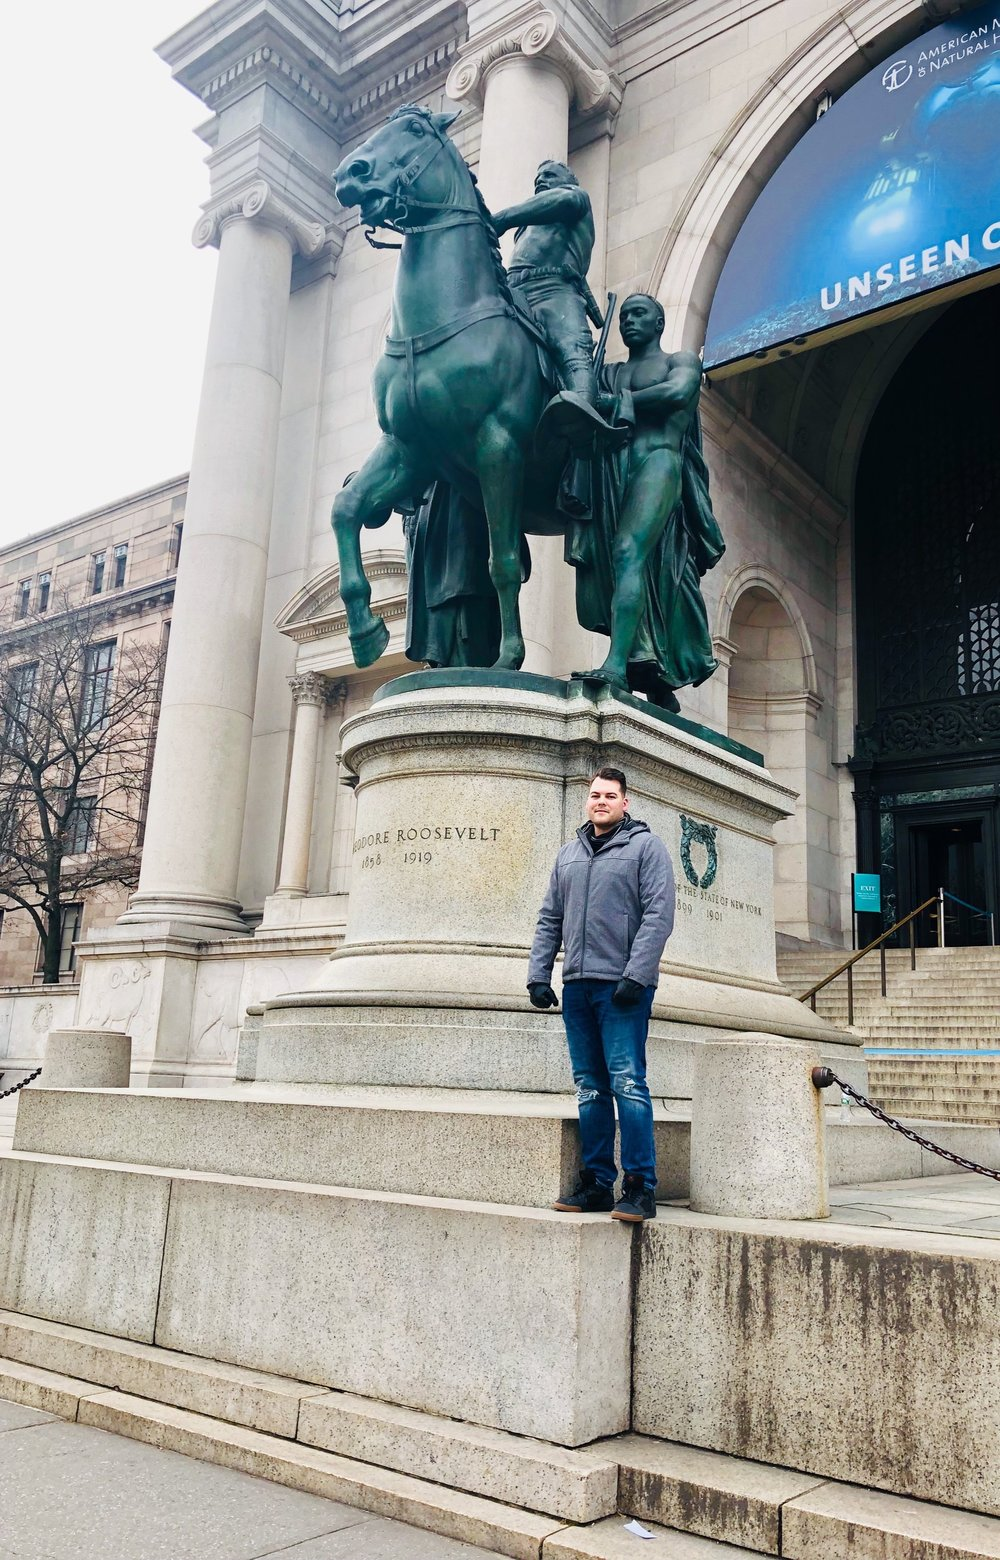 Theodore Roosevelt monument outside American Museum of Natural History. Did you know that it was because of him that we have national parks and game reserves?